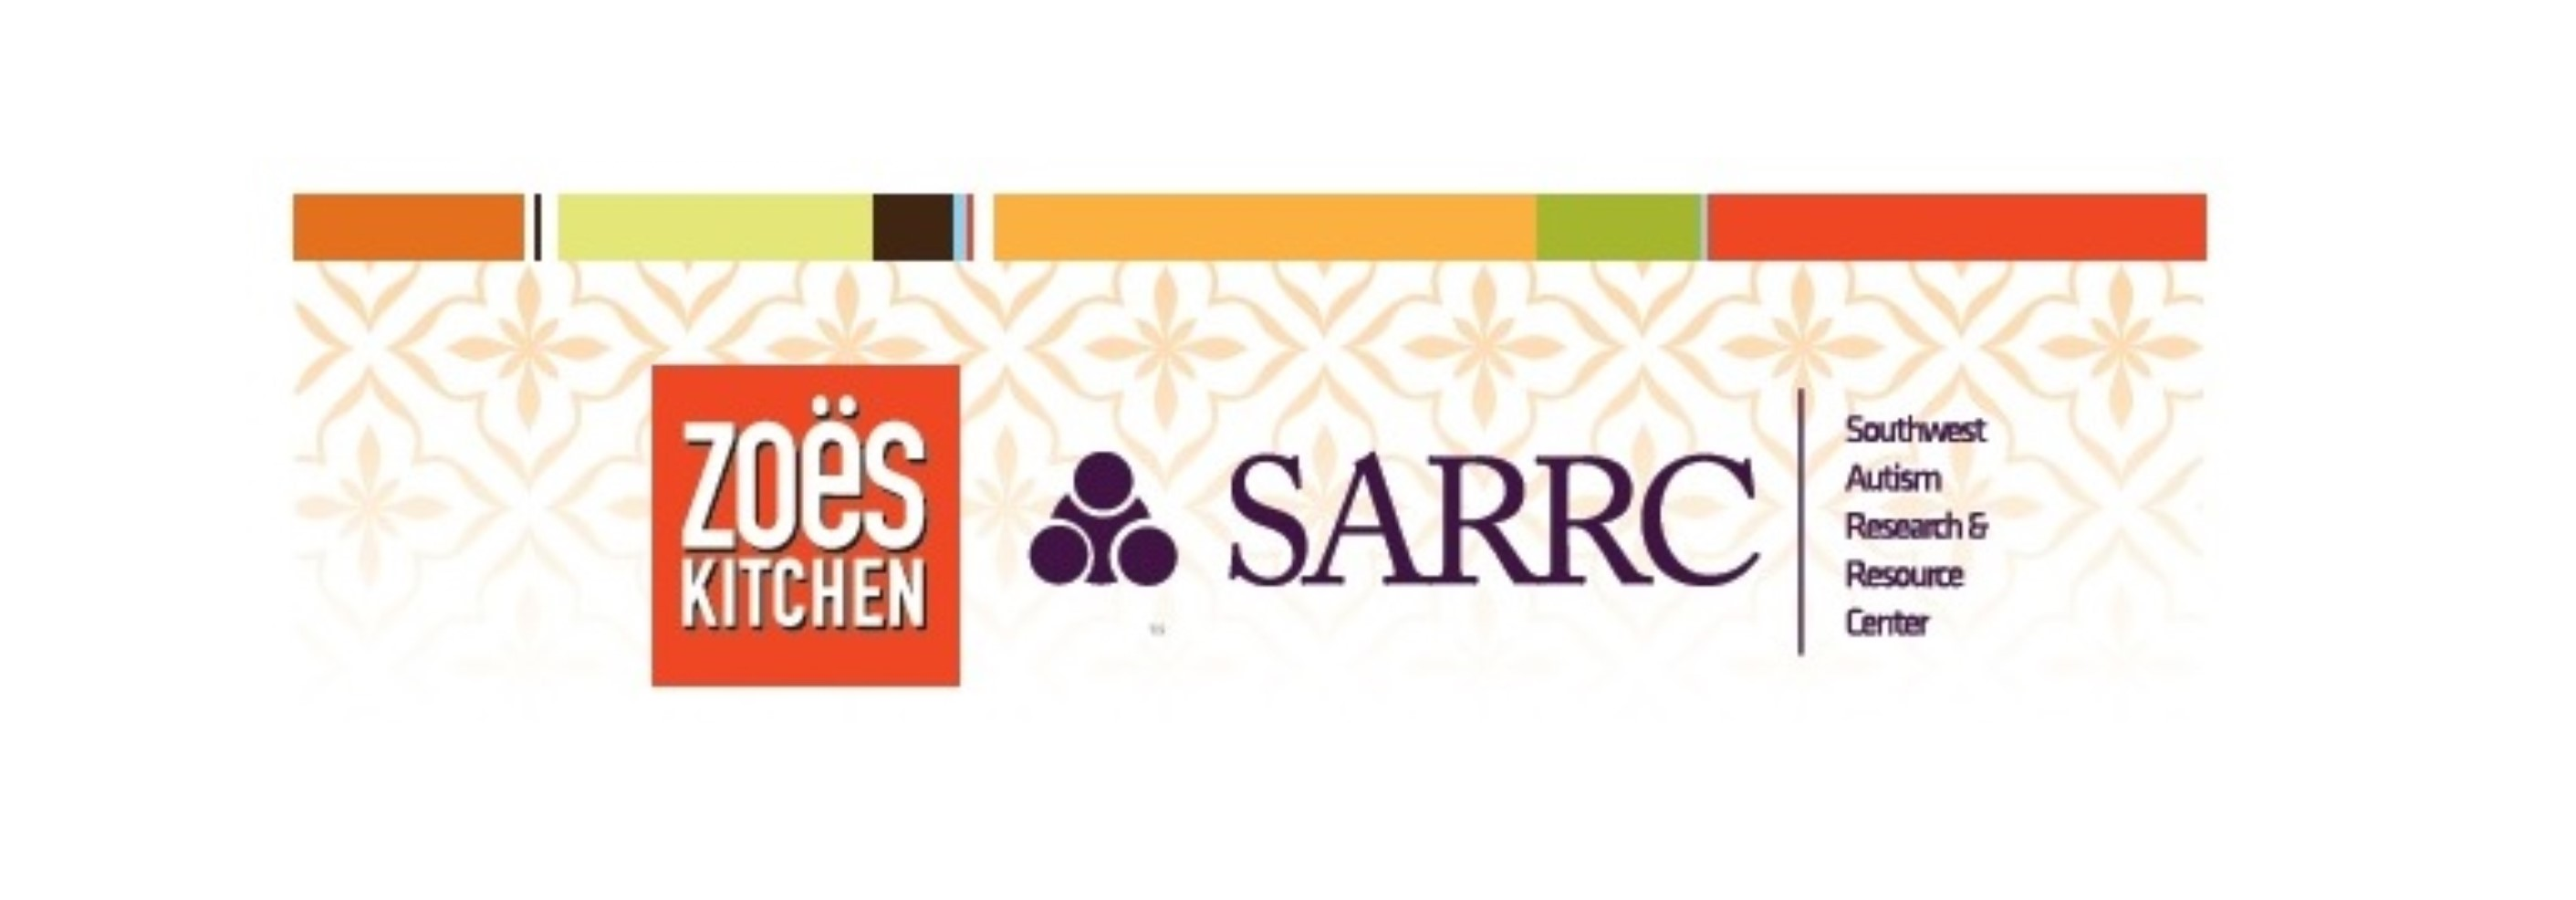 Dine-in at Zoe\'s Kitchen & Support SARRC   Southwest Autism Research ...